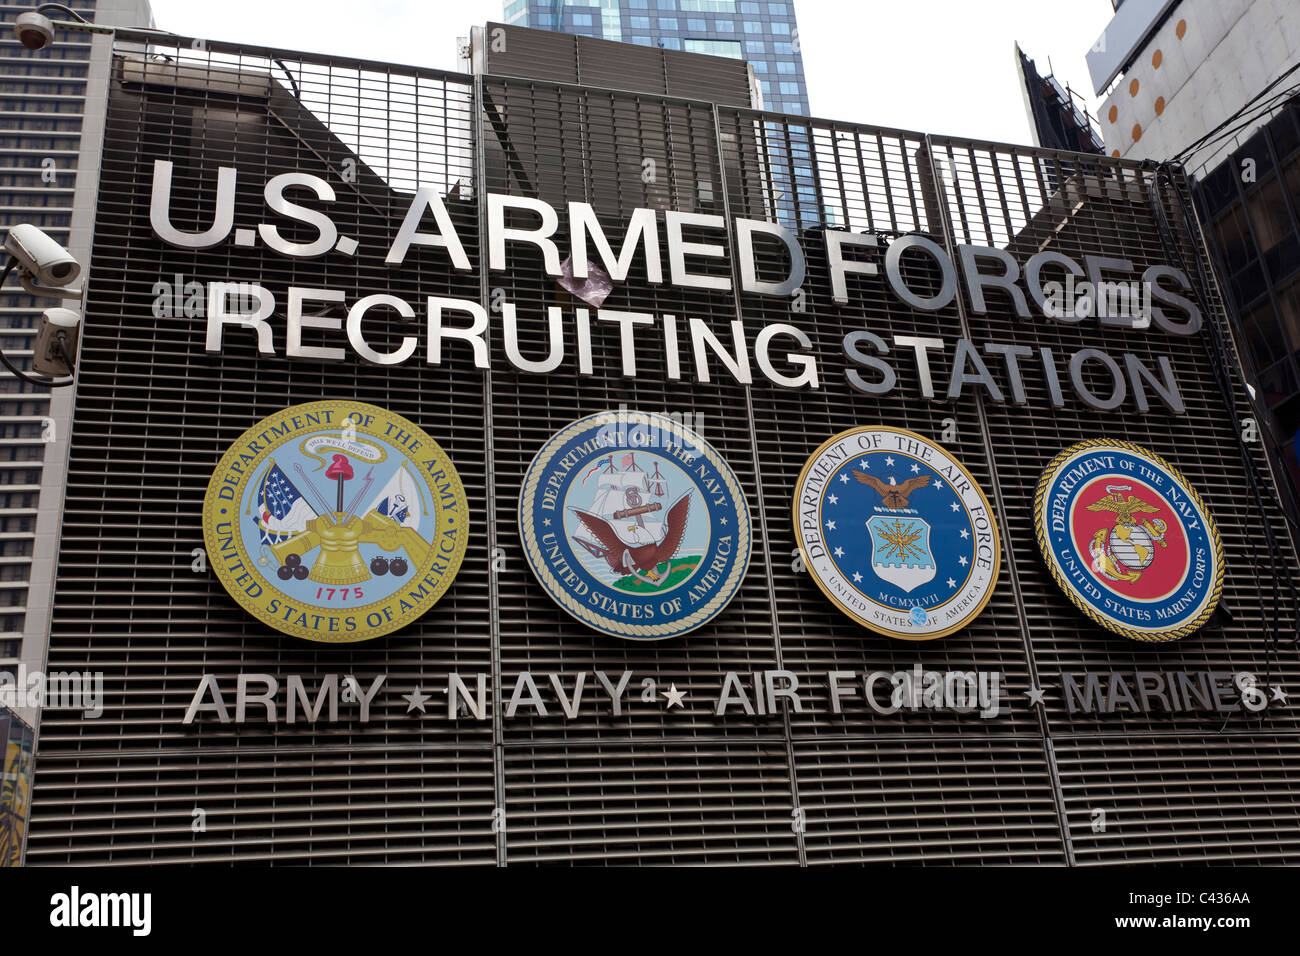 US Armed Forces Recruiting Station, Times Square, Manhattan, New York, USA - Stock Image